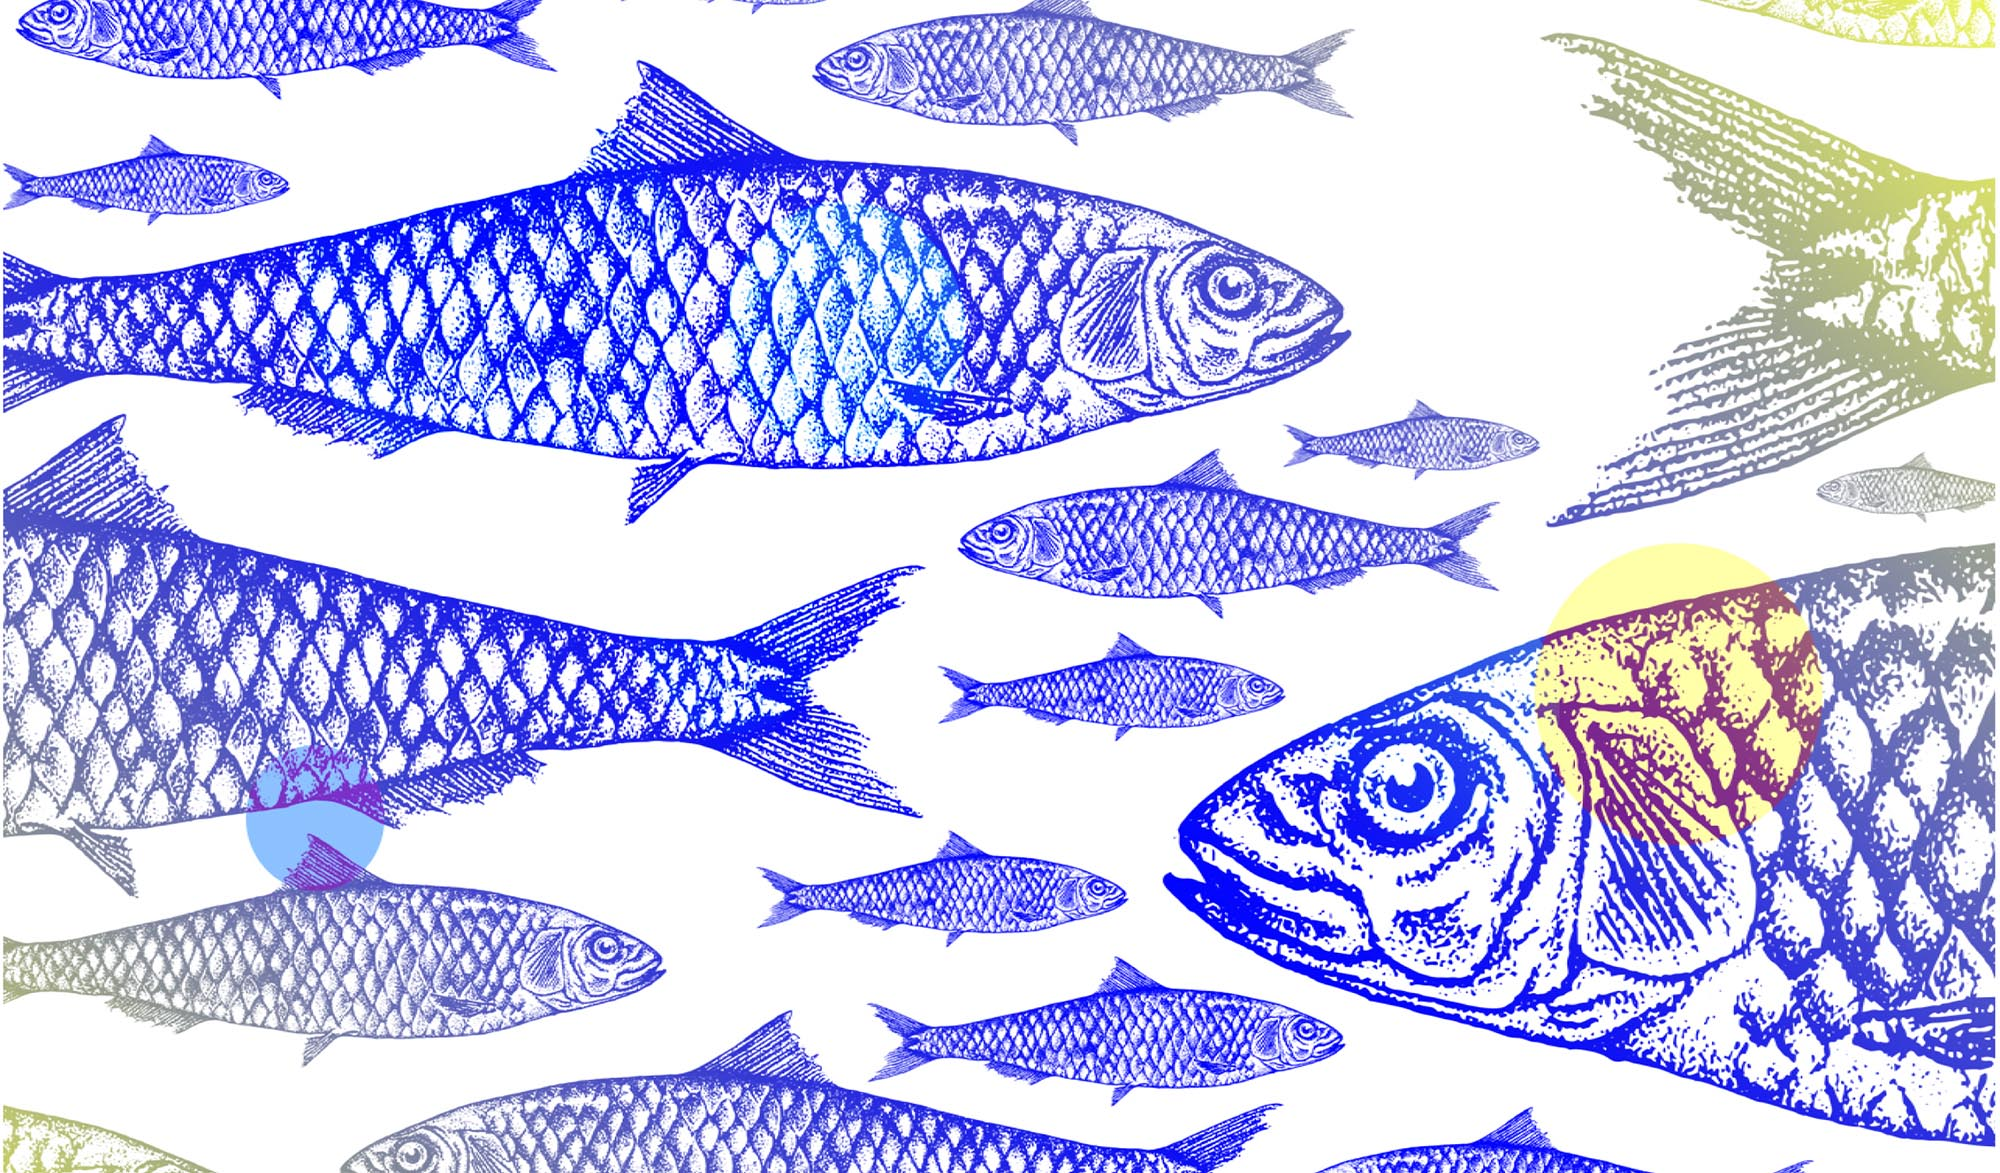 left ILLUSTRATION-POISSON-FISH-ANIMATION-HABILLAGE-GRAPHIQUE